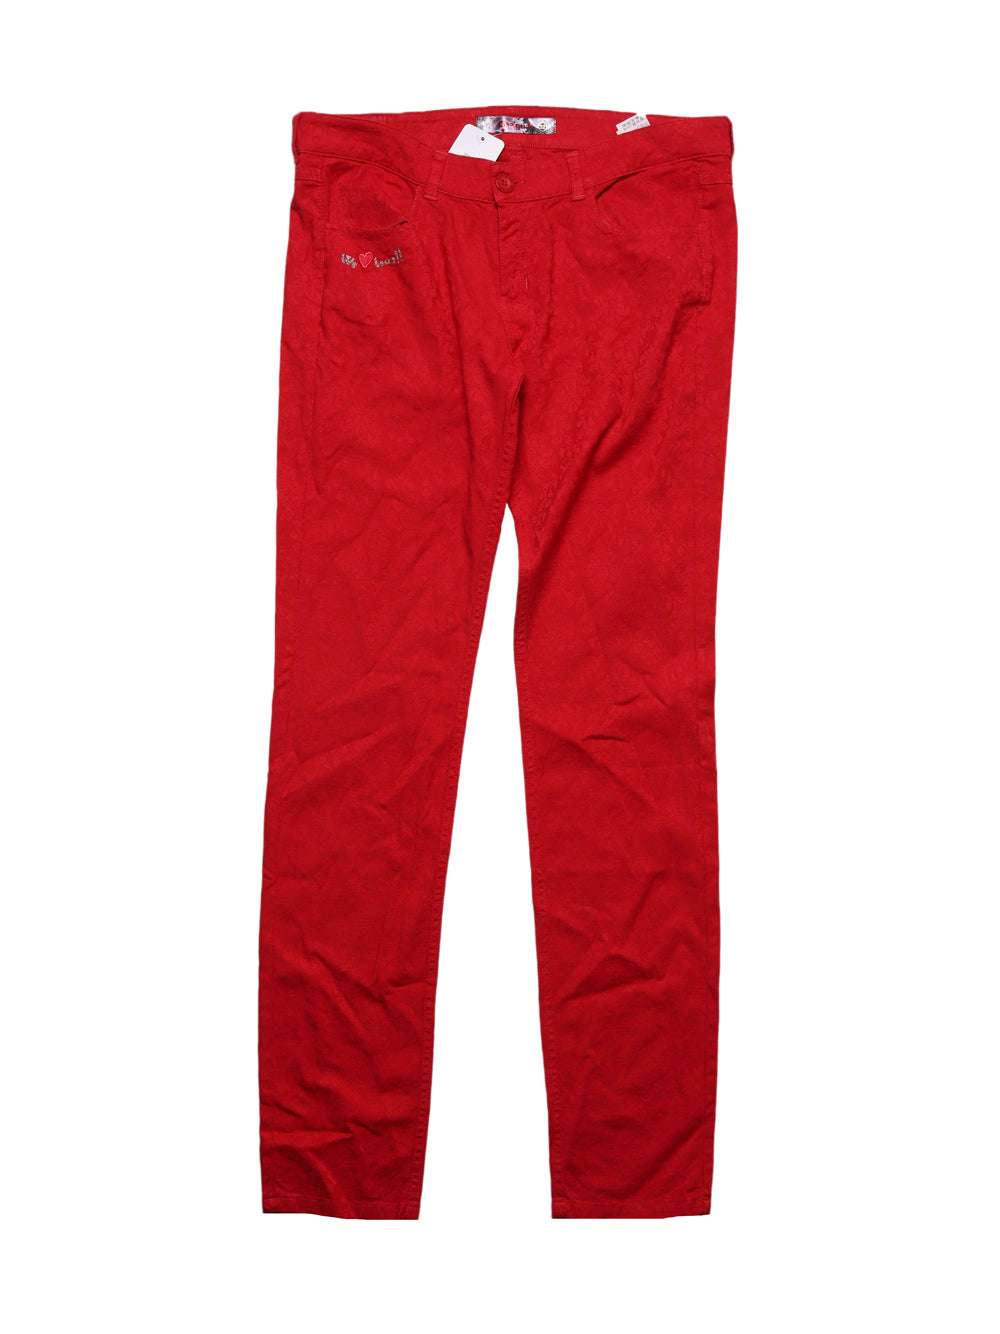 Front photo of Preloved Desigual Red Woman's trousers - size 4/XXS